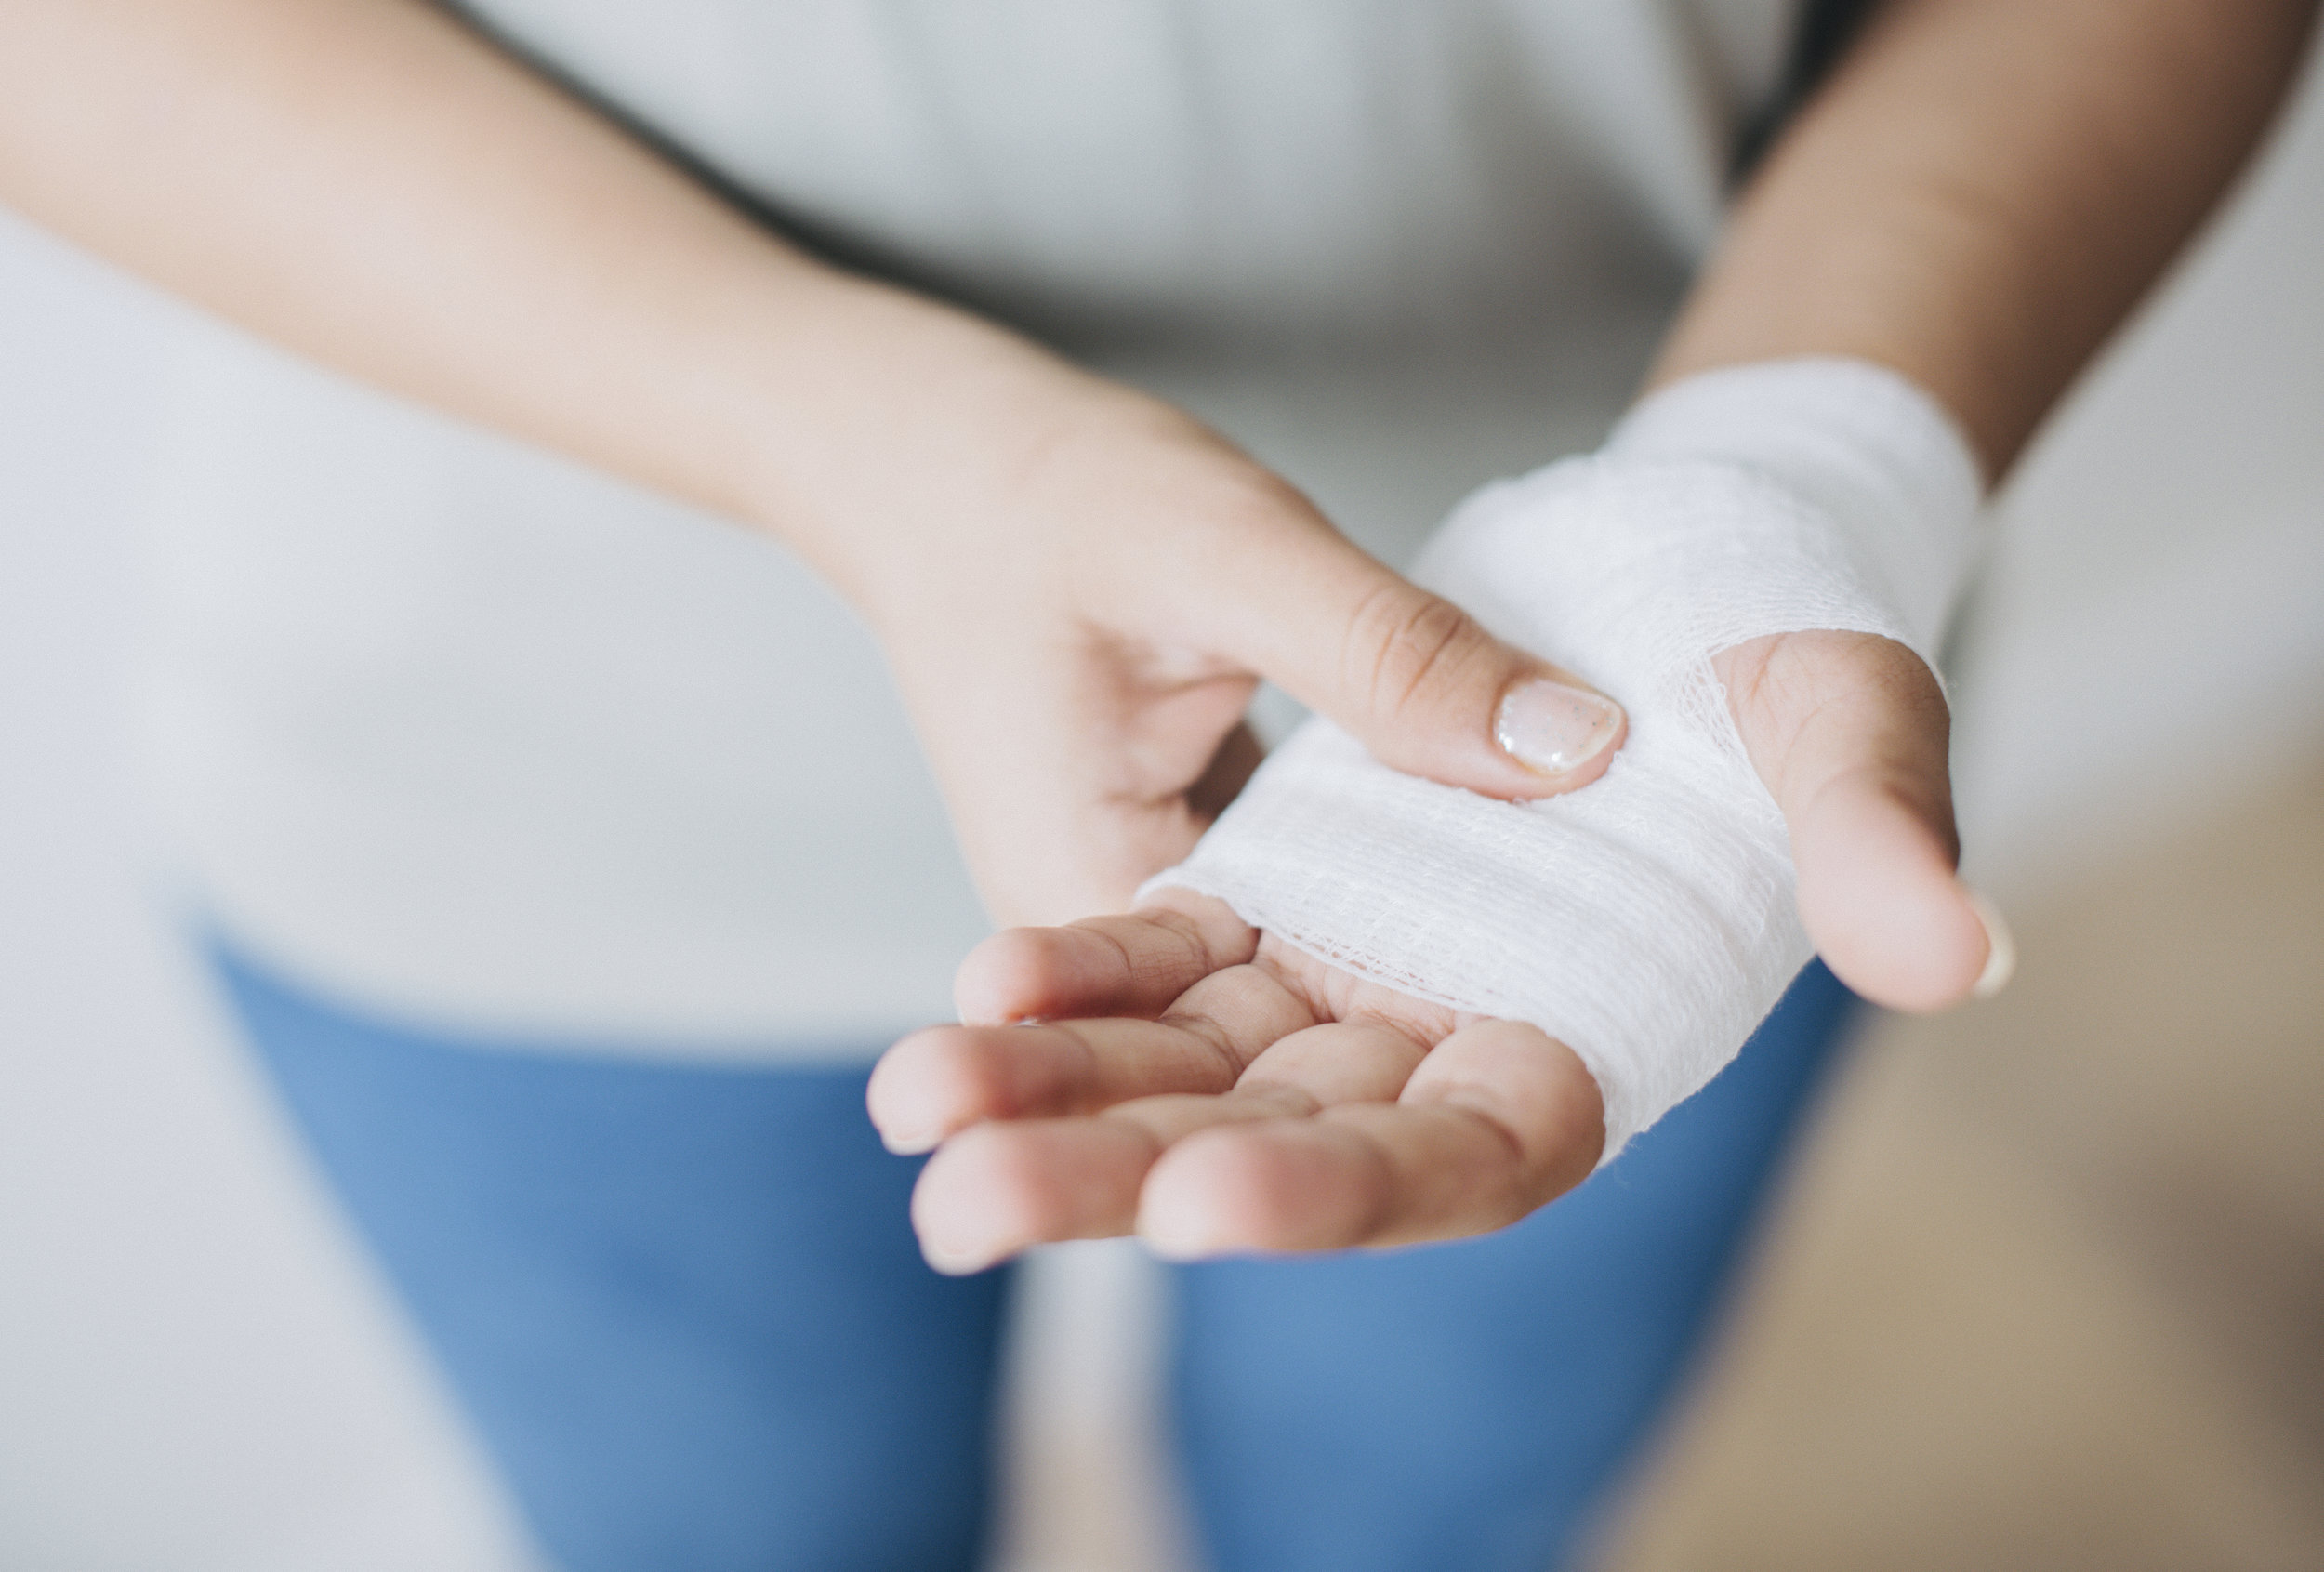 Short-Term Disability - By providing you with income protection, short-term disability insurance helps you remain financially stable should you become injured or ill and cannot work.